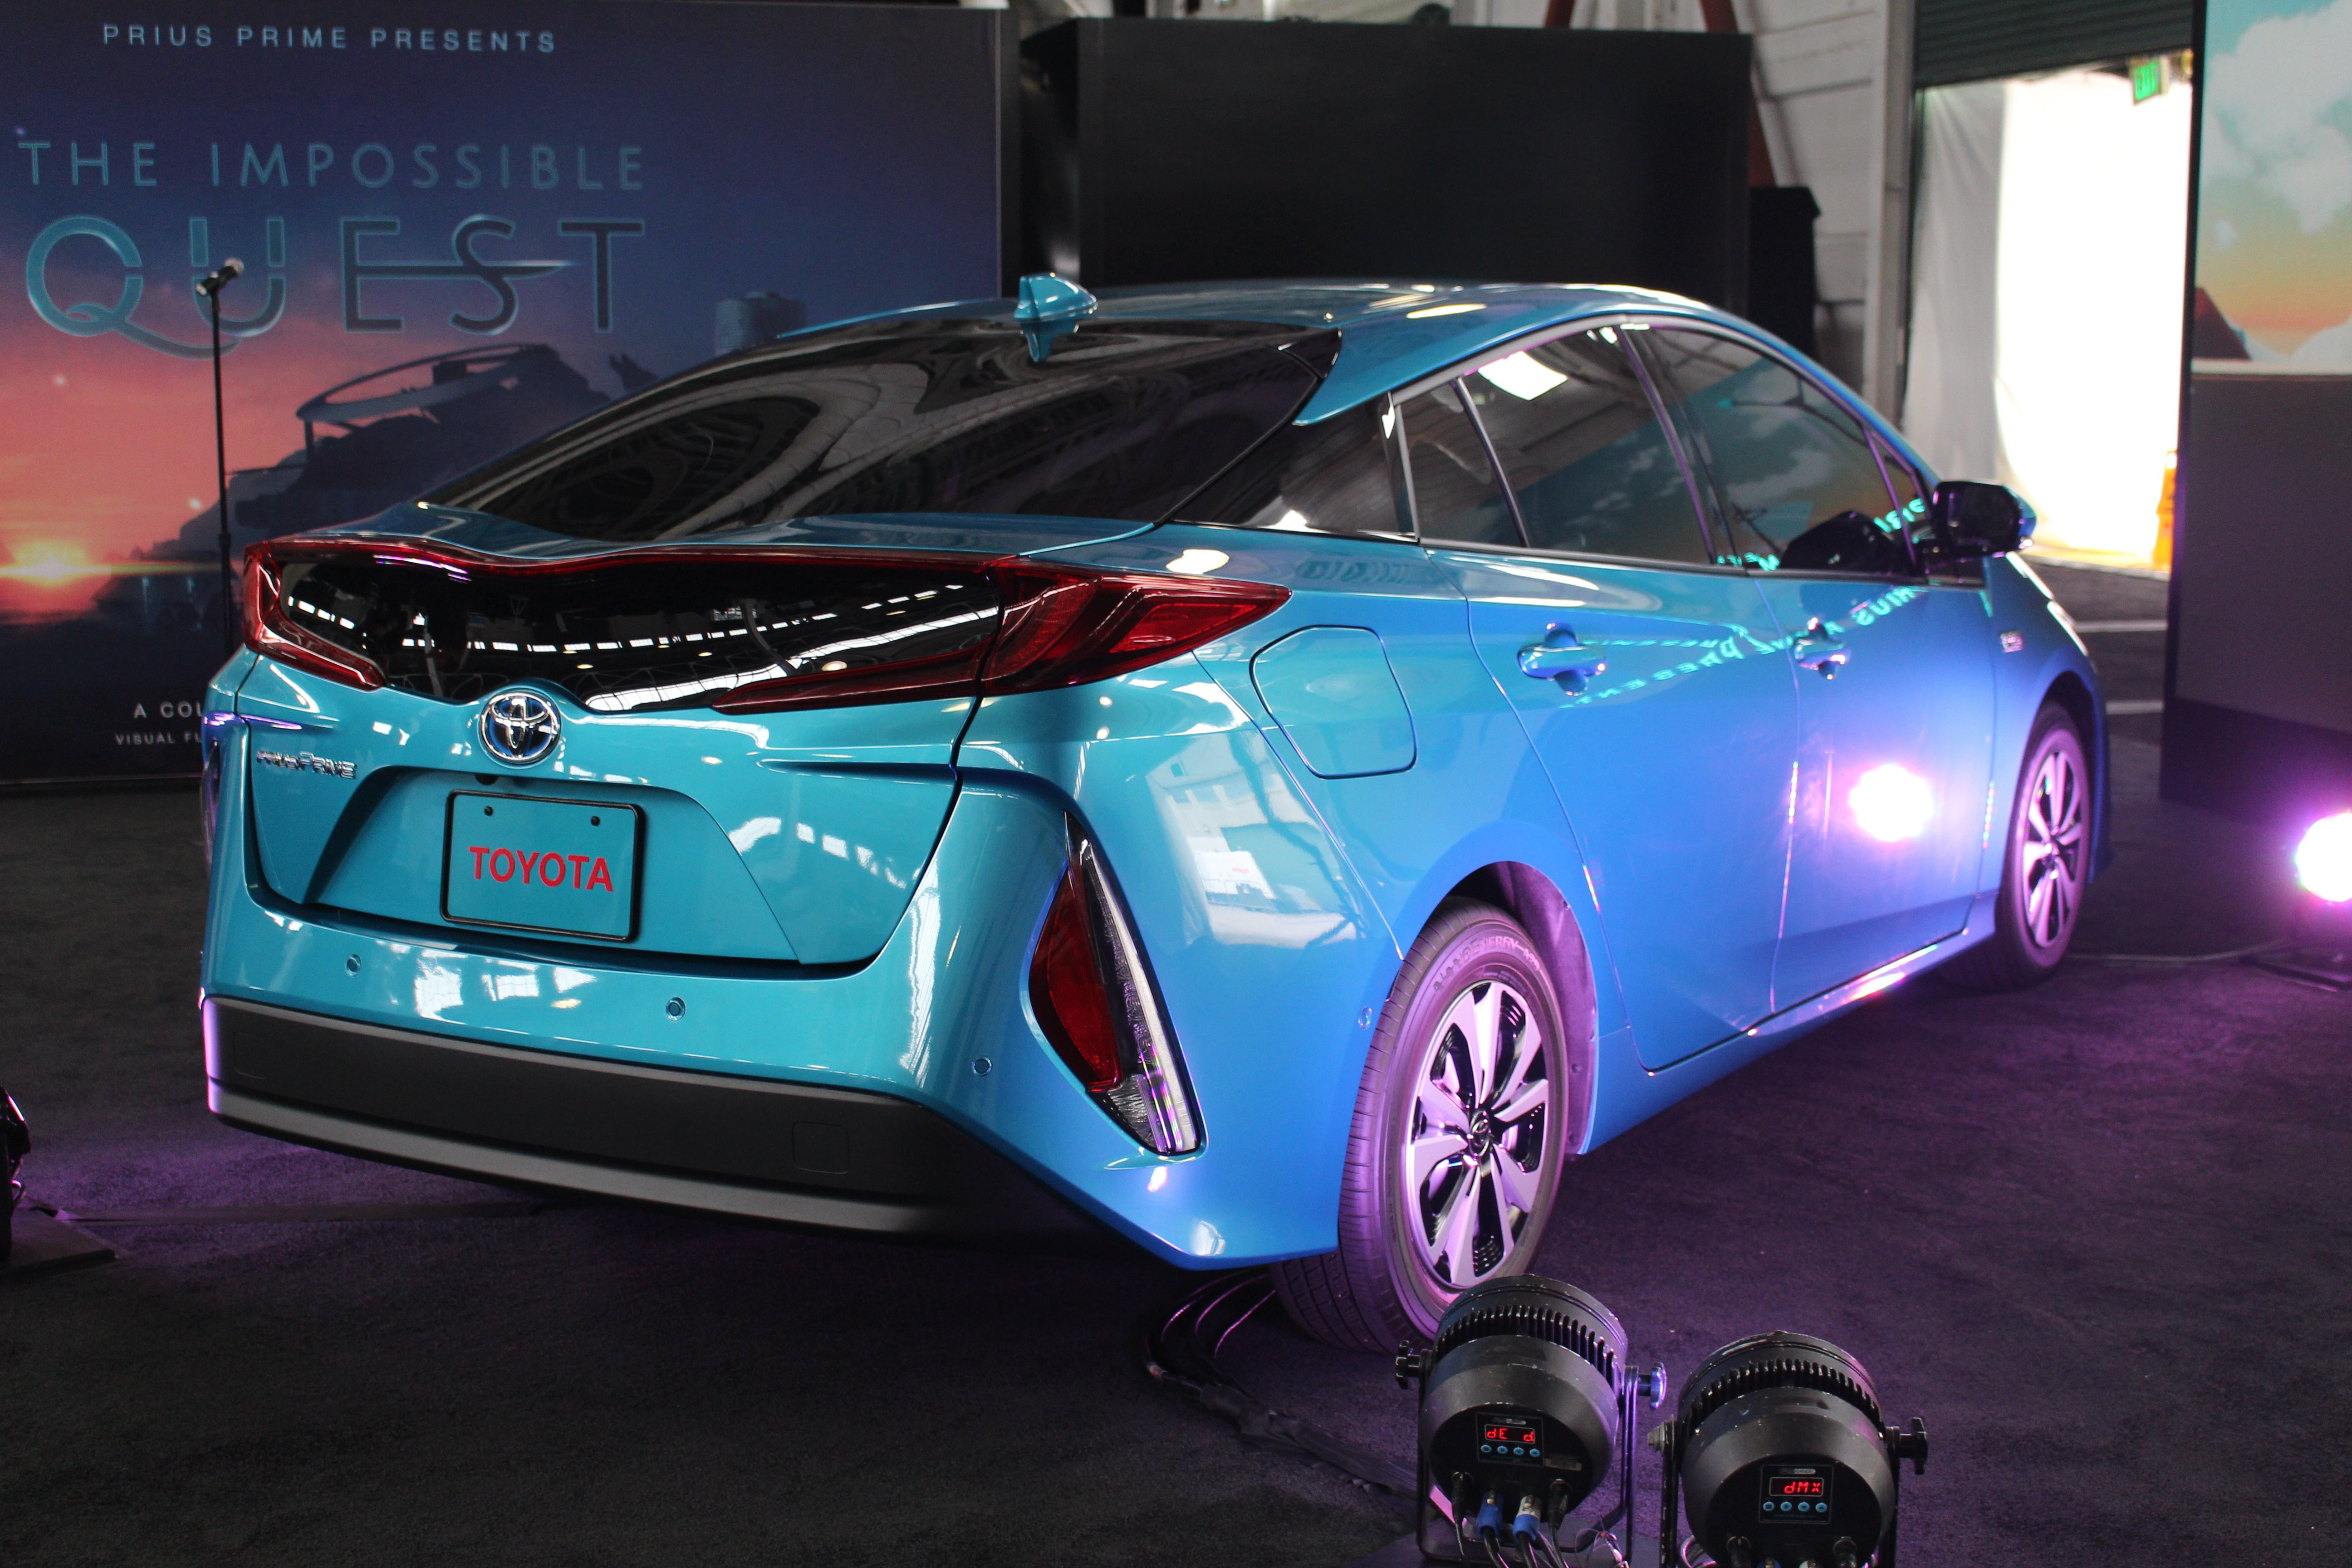 Meet the 2017 Toyota Prius Prime in its West Coast debut ...